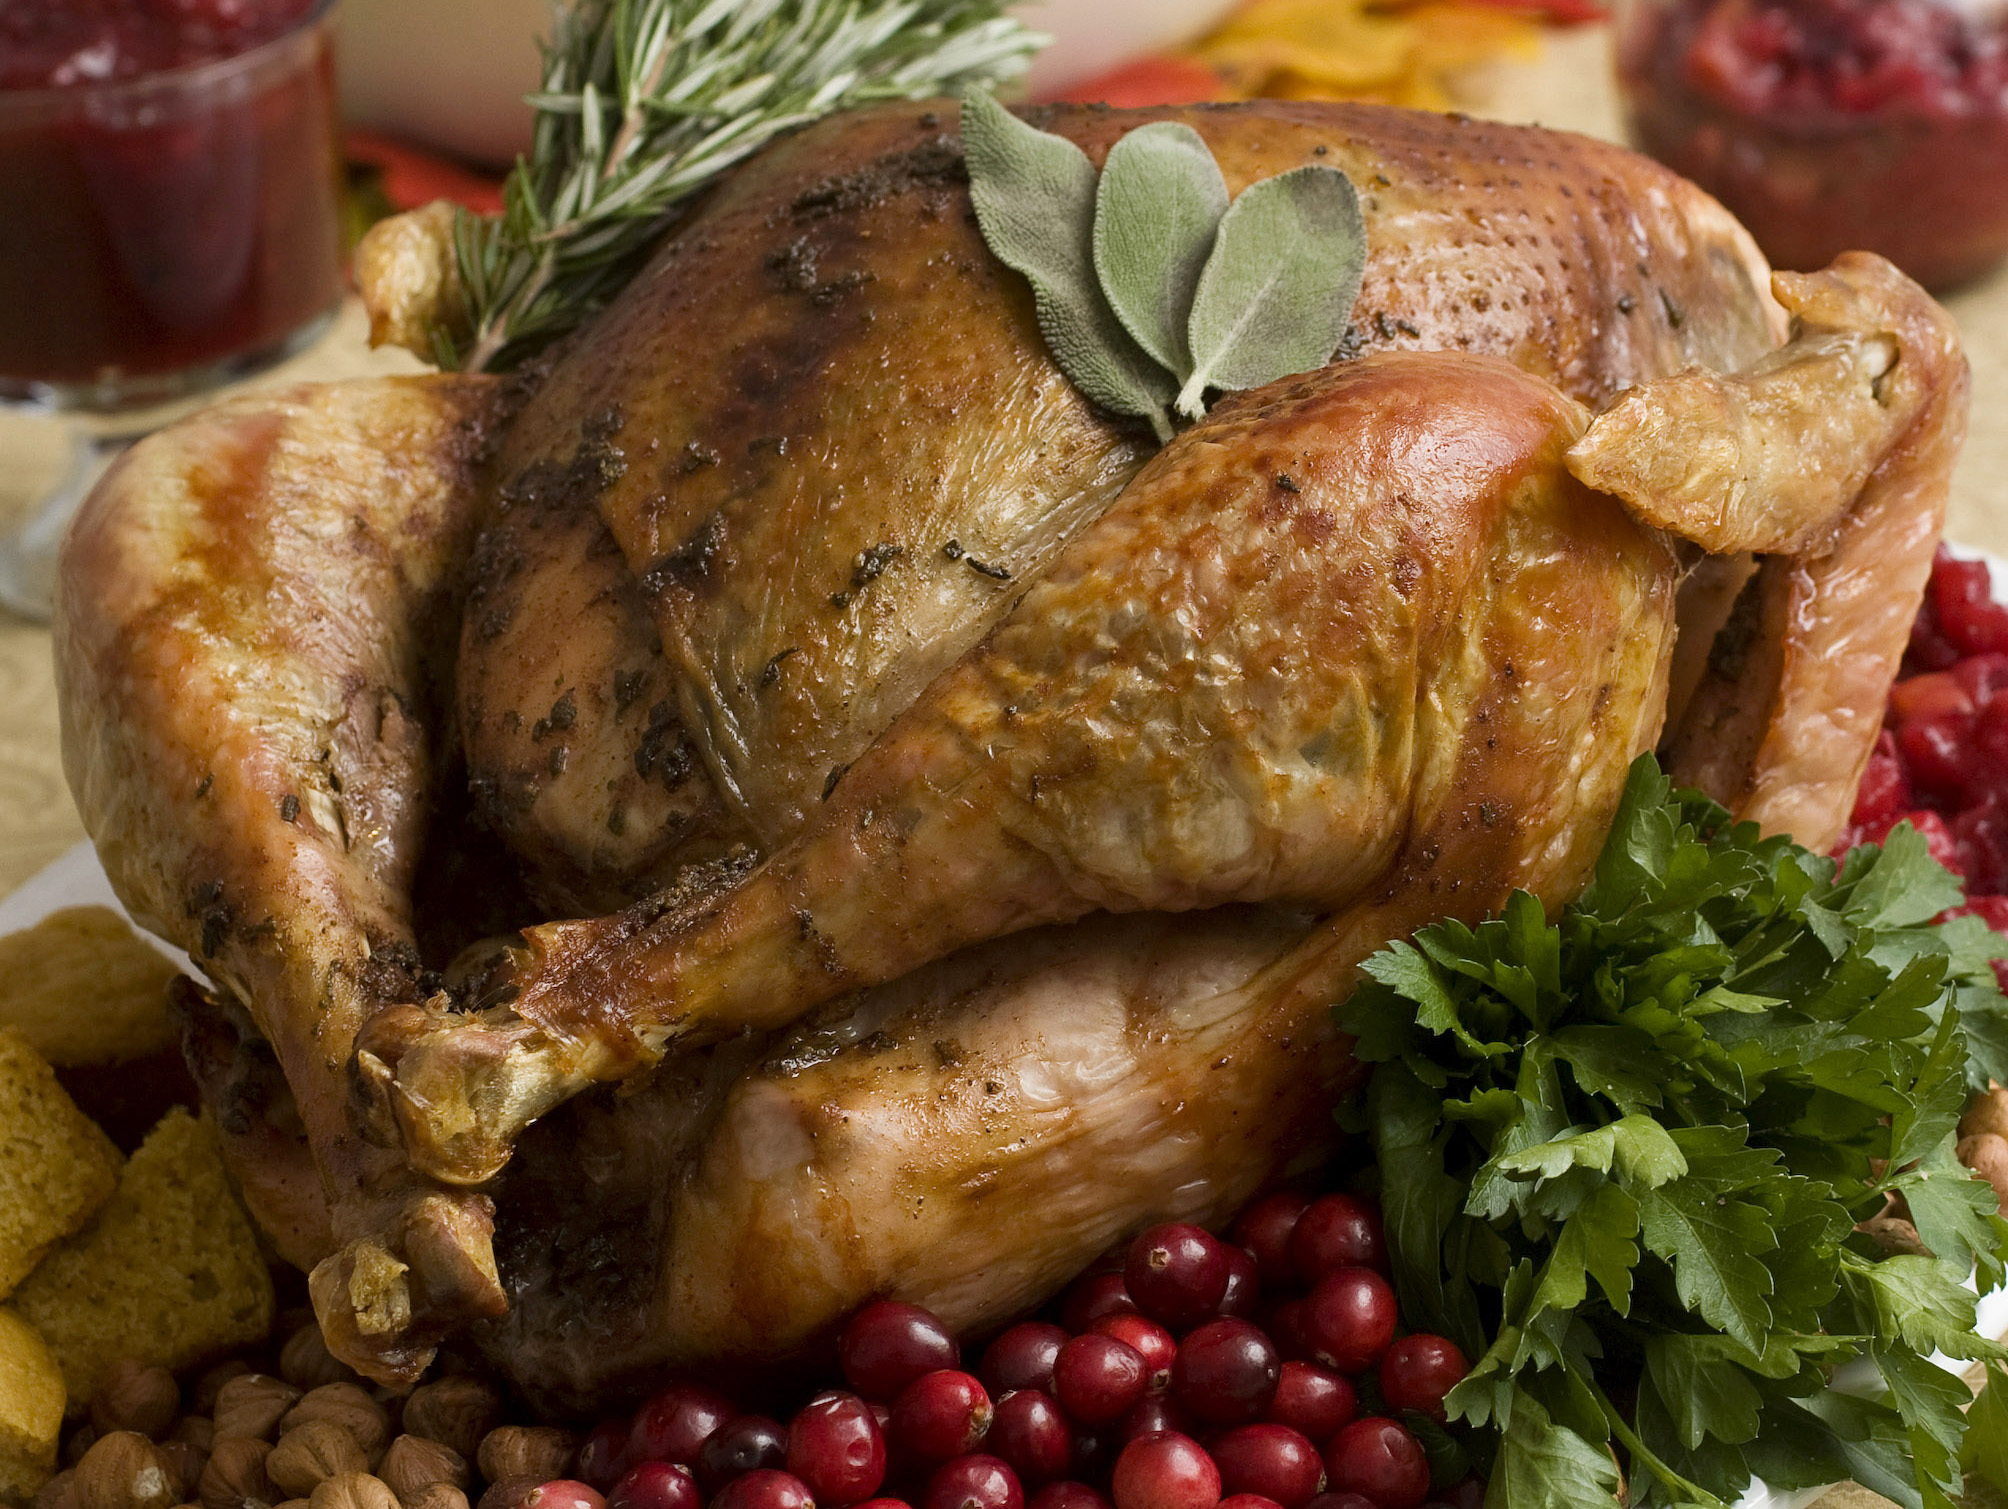 A cooked turkey isn't safe until all the parts, even the ones deepest inside, have reached 165 degrees.